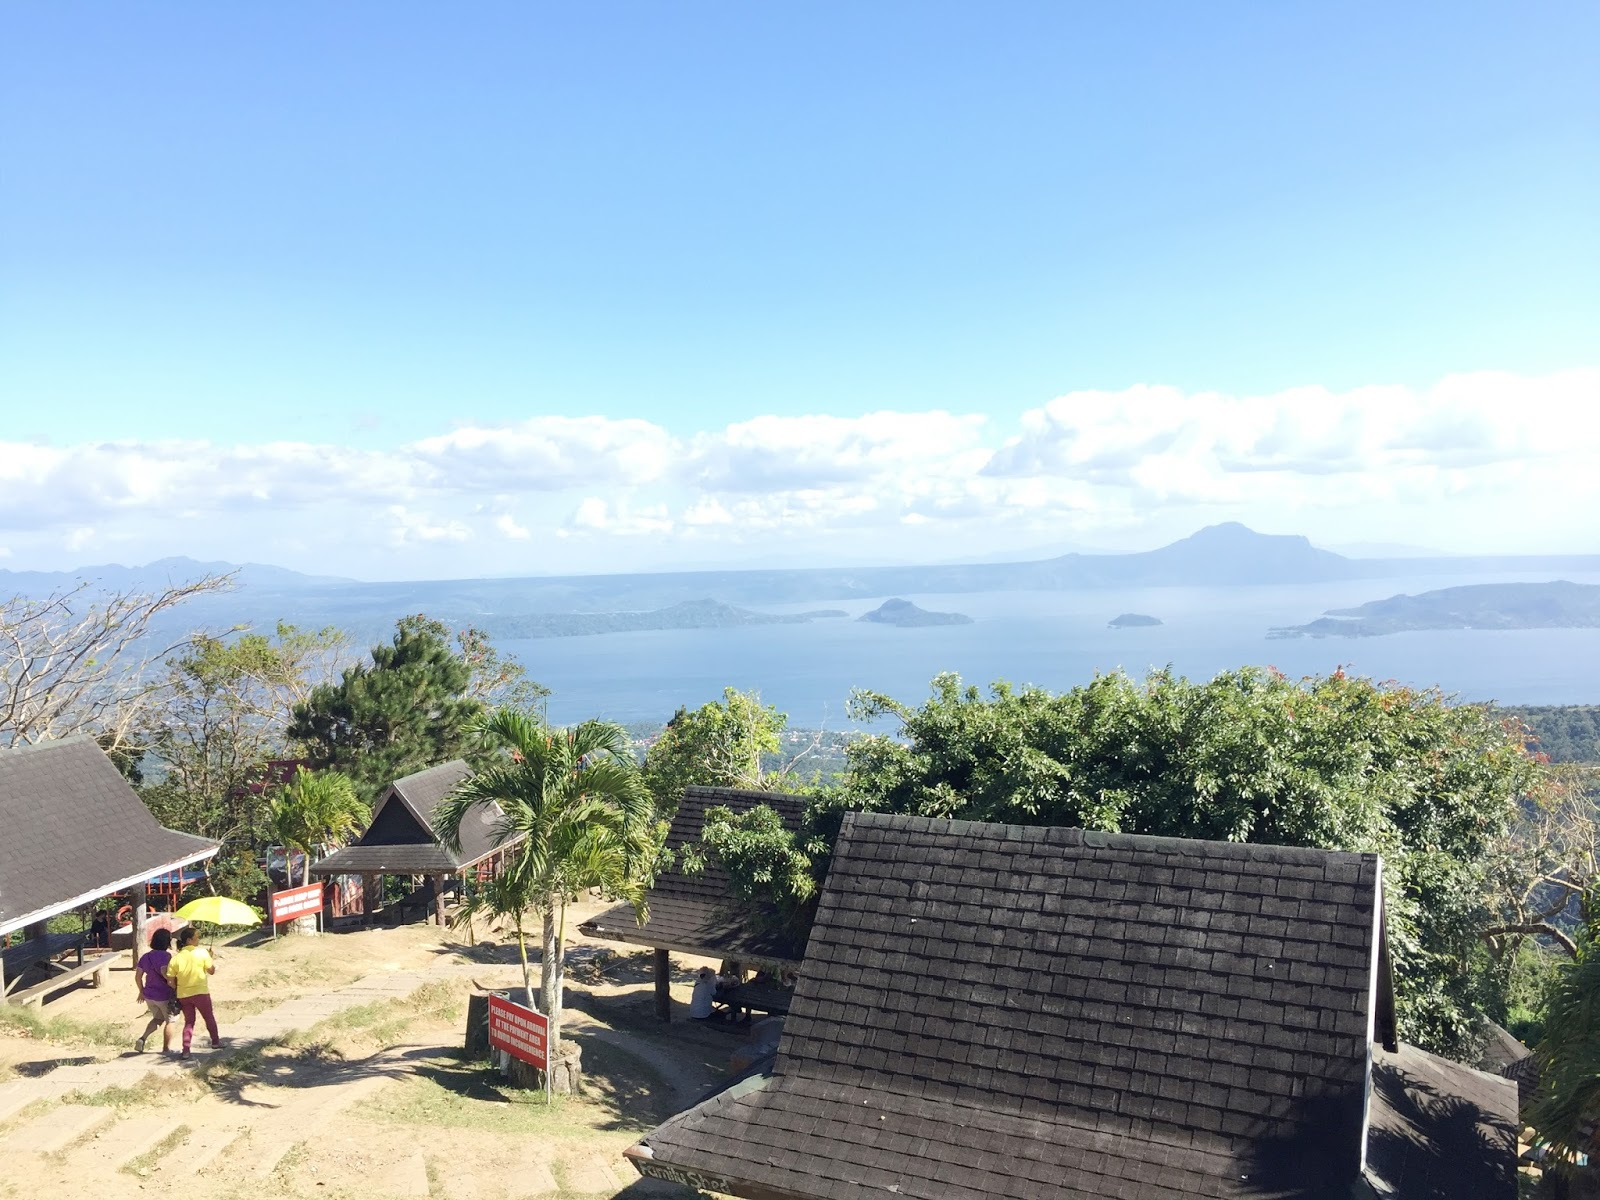 the beauty of nature in tagaytay